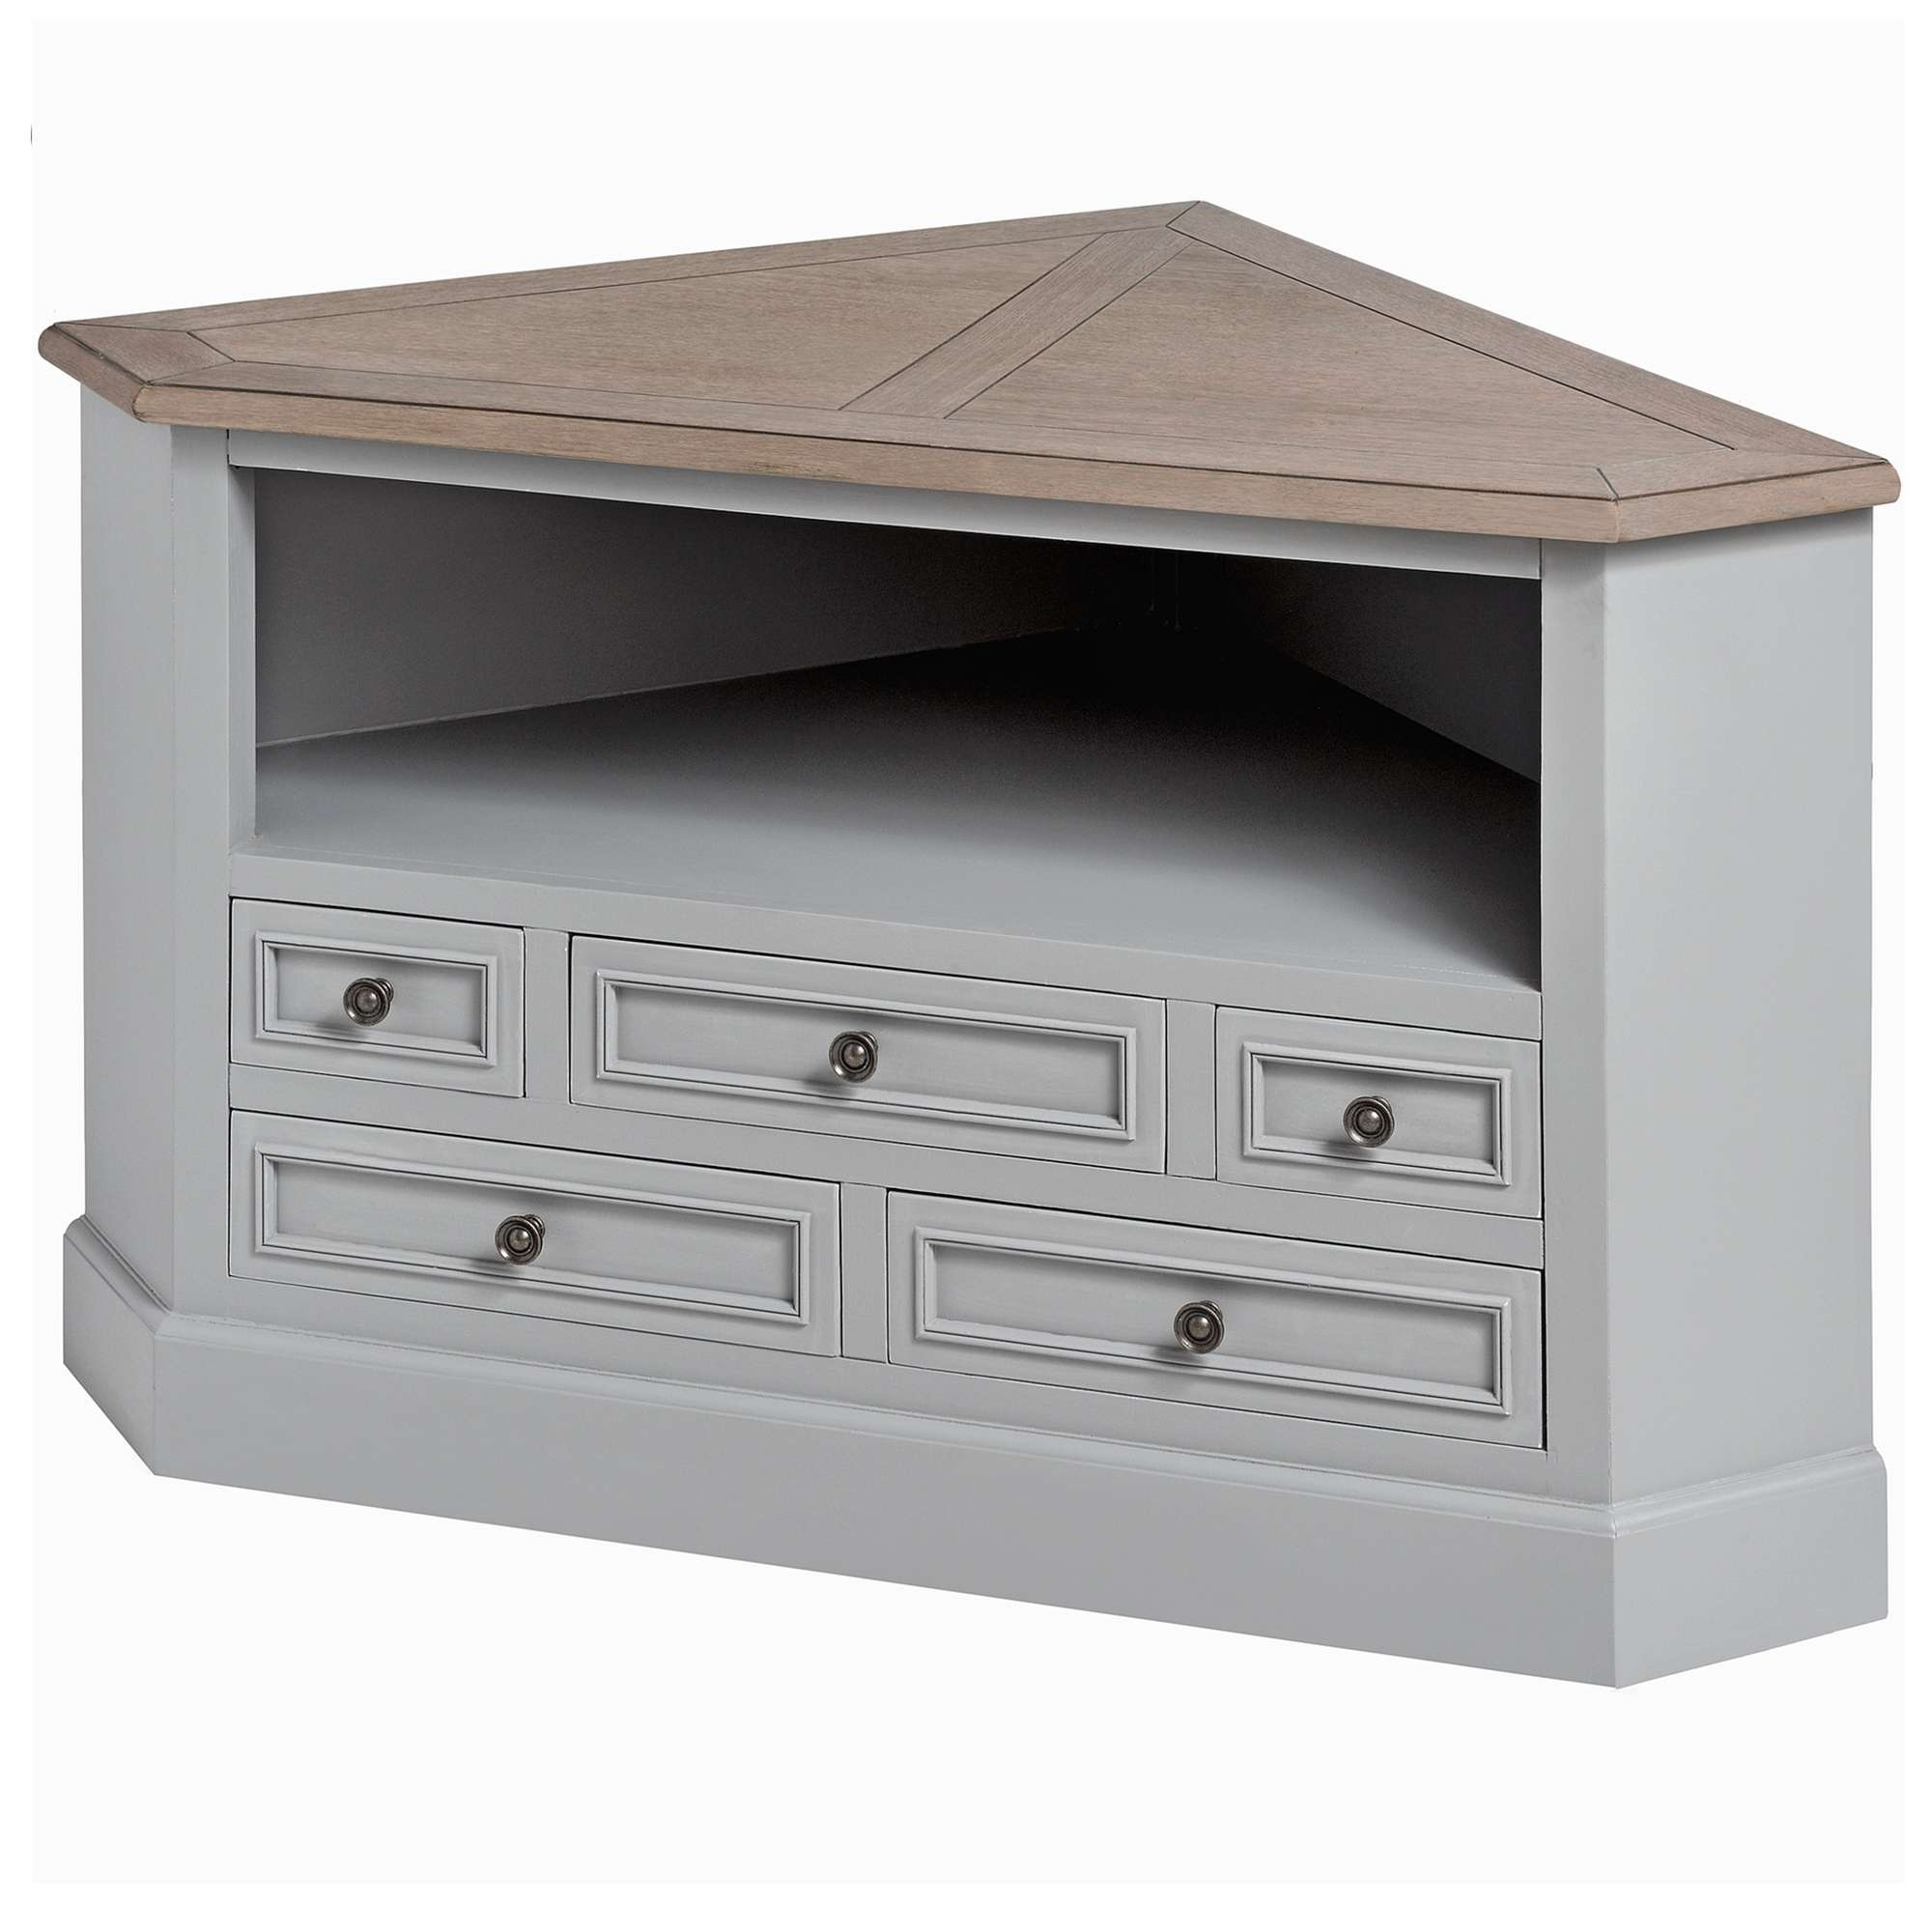 Churchill Shabby Chic Tv Cabinet | Available Online Now With Shabby Chic Tv Cabinets (View 3 of 20)